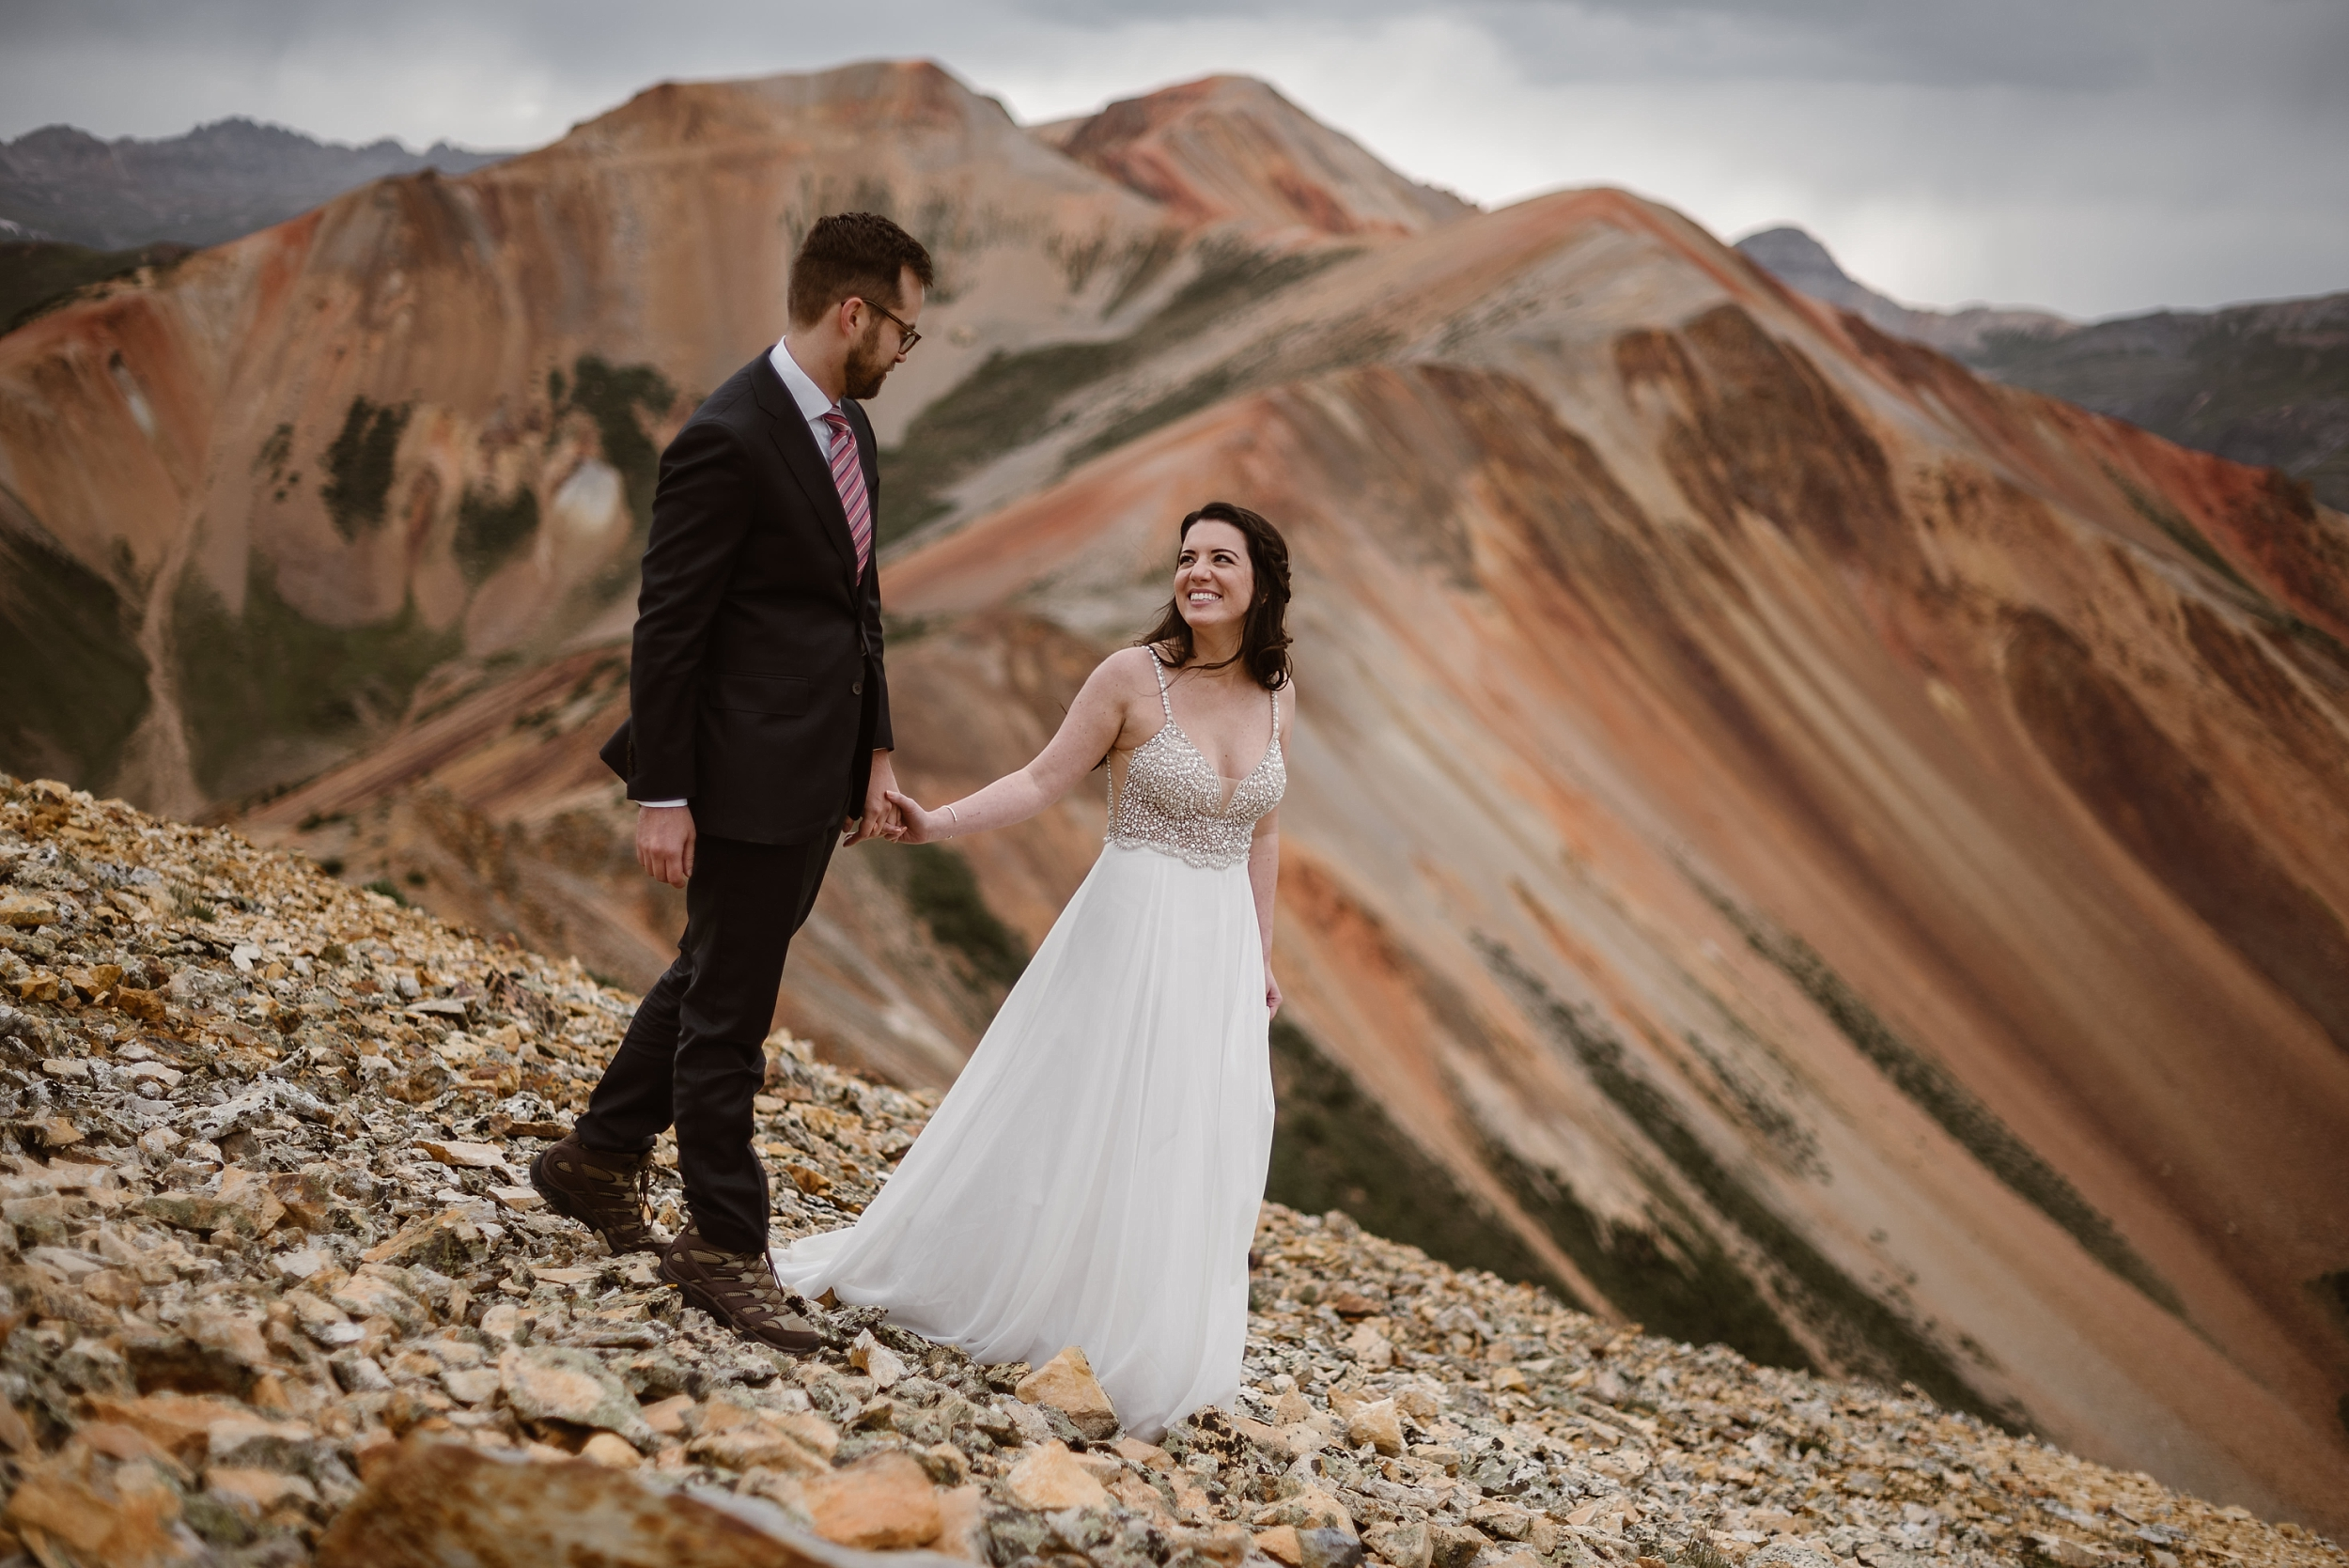 The bride and groom Katie and Logan, hold hands as they make their way along the rocky mountainside in Ouray, Colorado. The two hike in their wedding attire, which is one of the most unique eloping ideas. They look at each other smiling among a gorgeous red mountain landscape in these elopement photos captured by Adventure Instead.